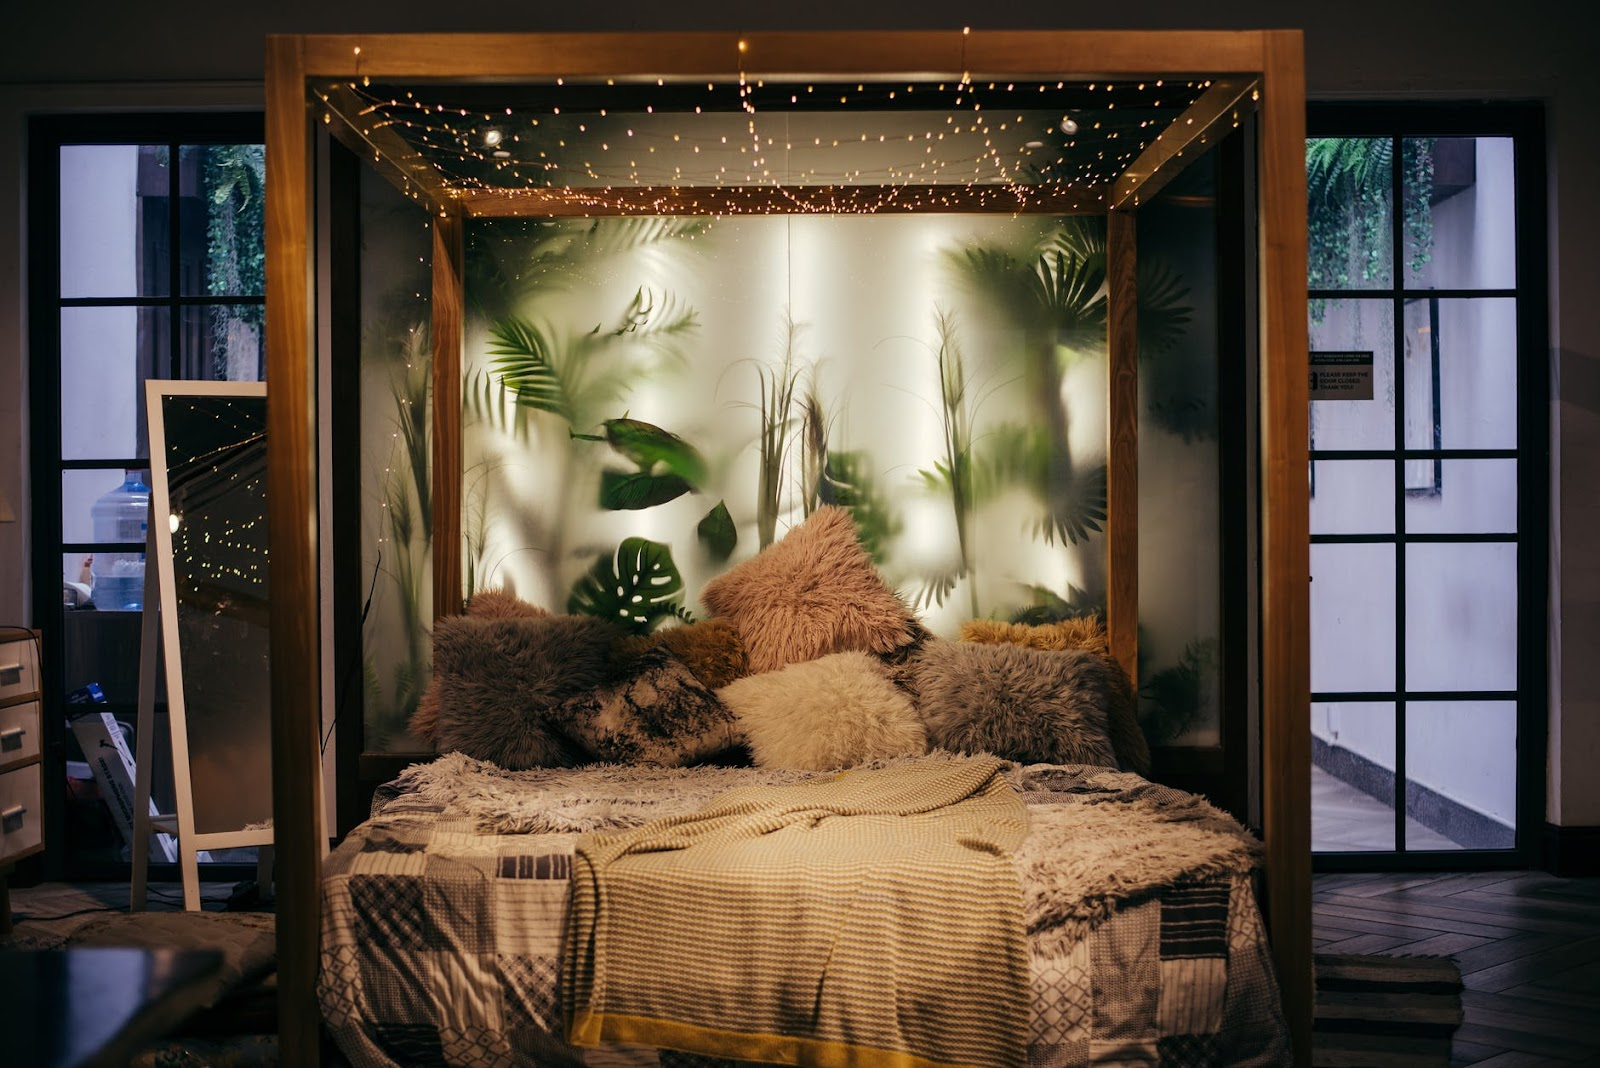 boho bedroom with twinkle lights and plants